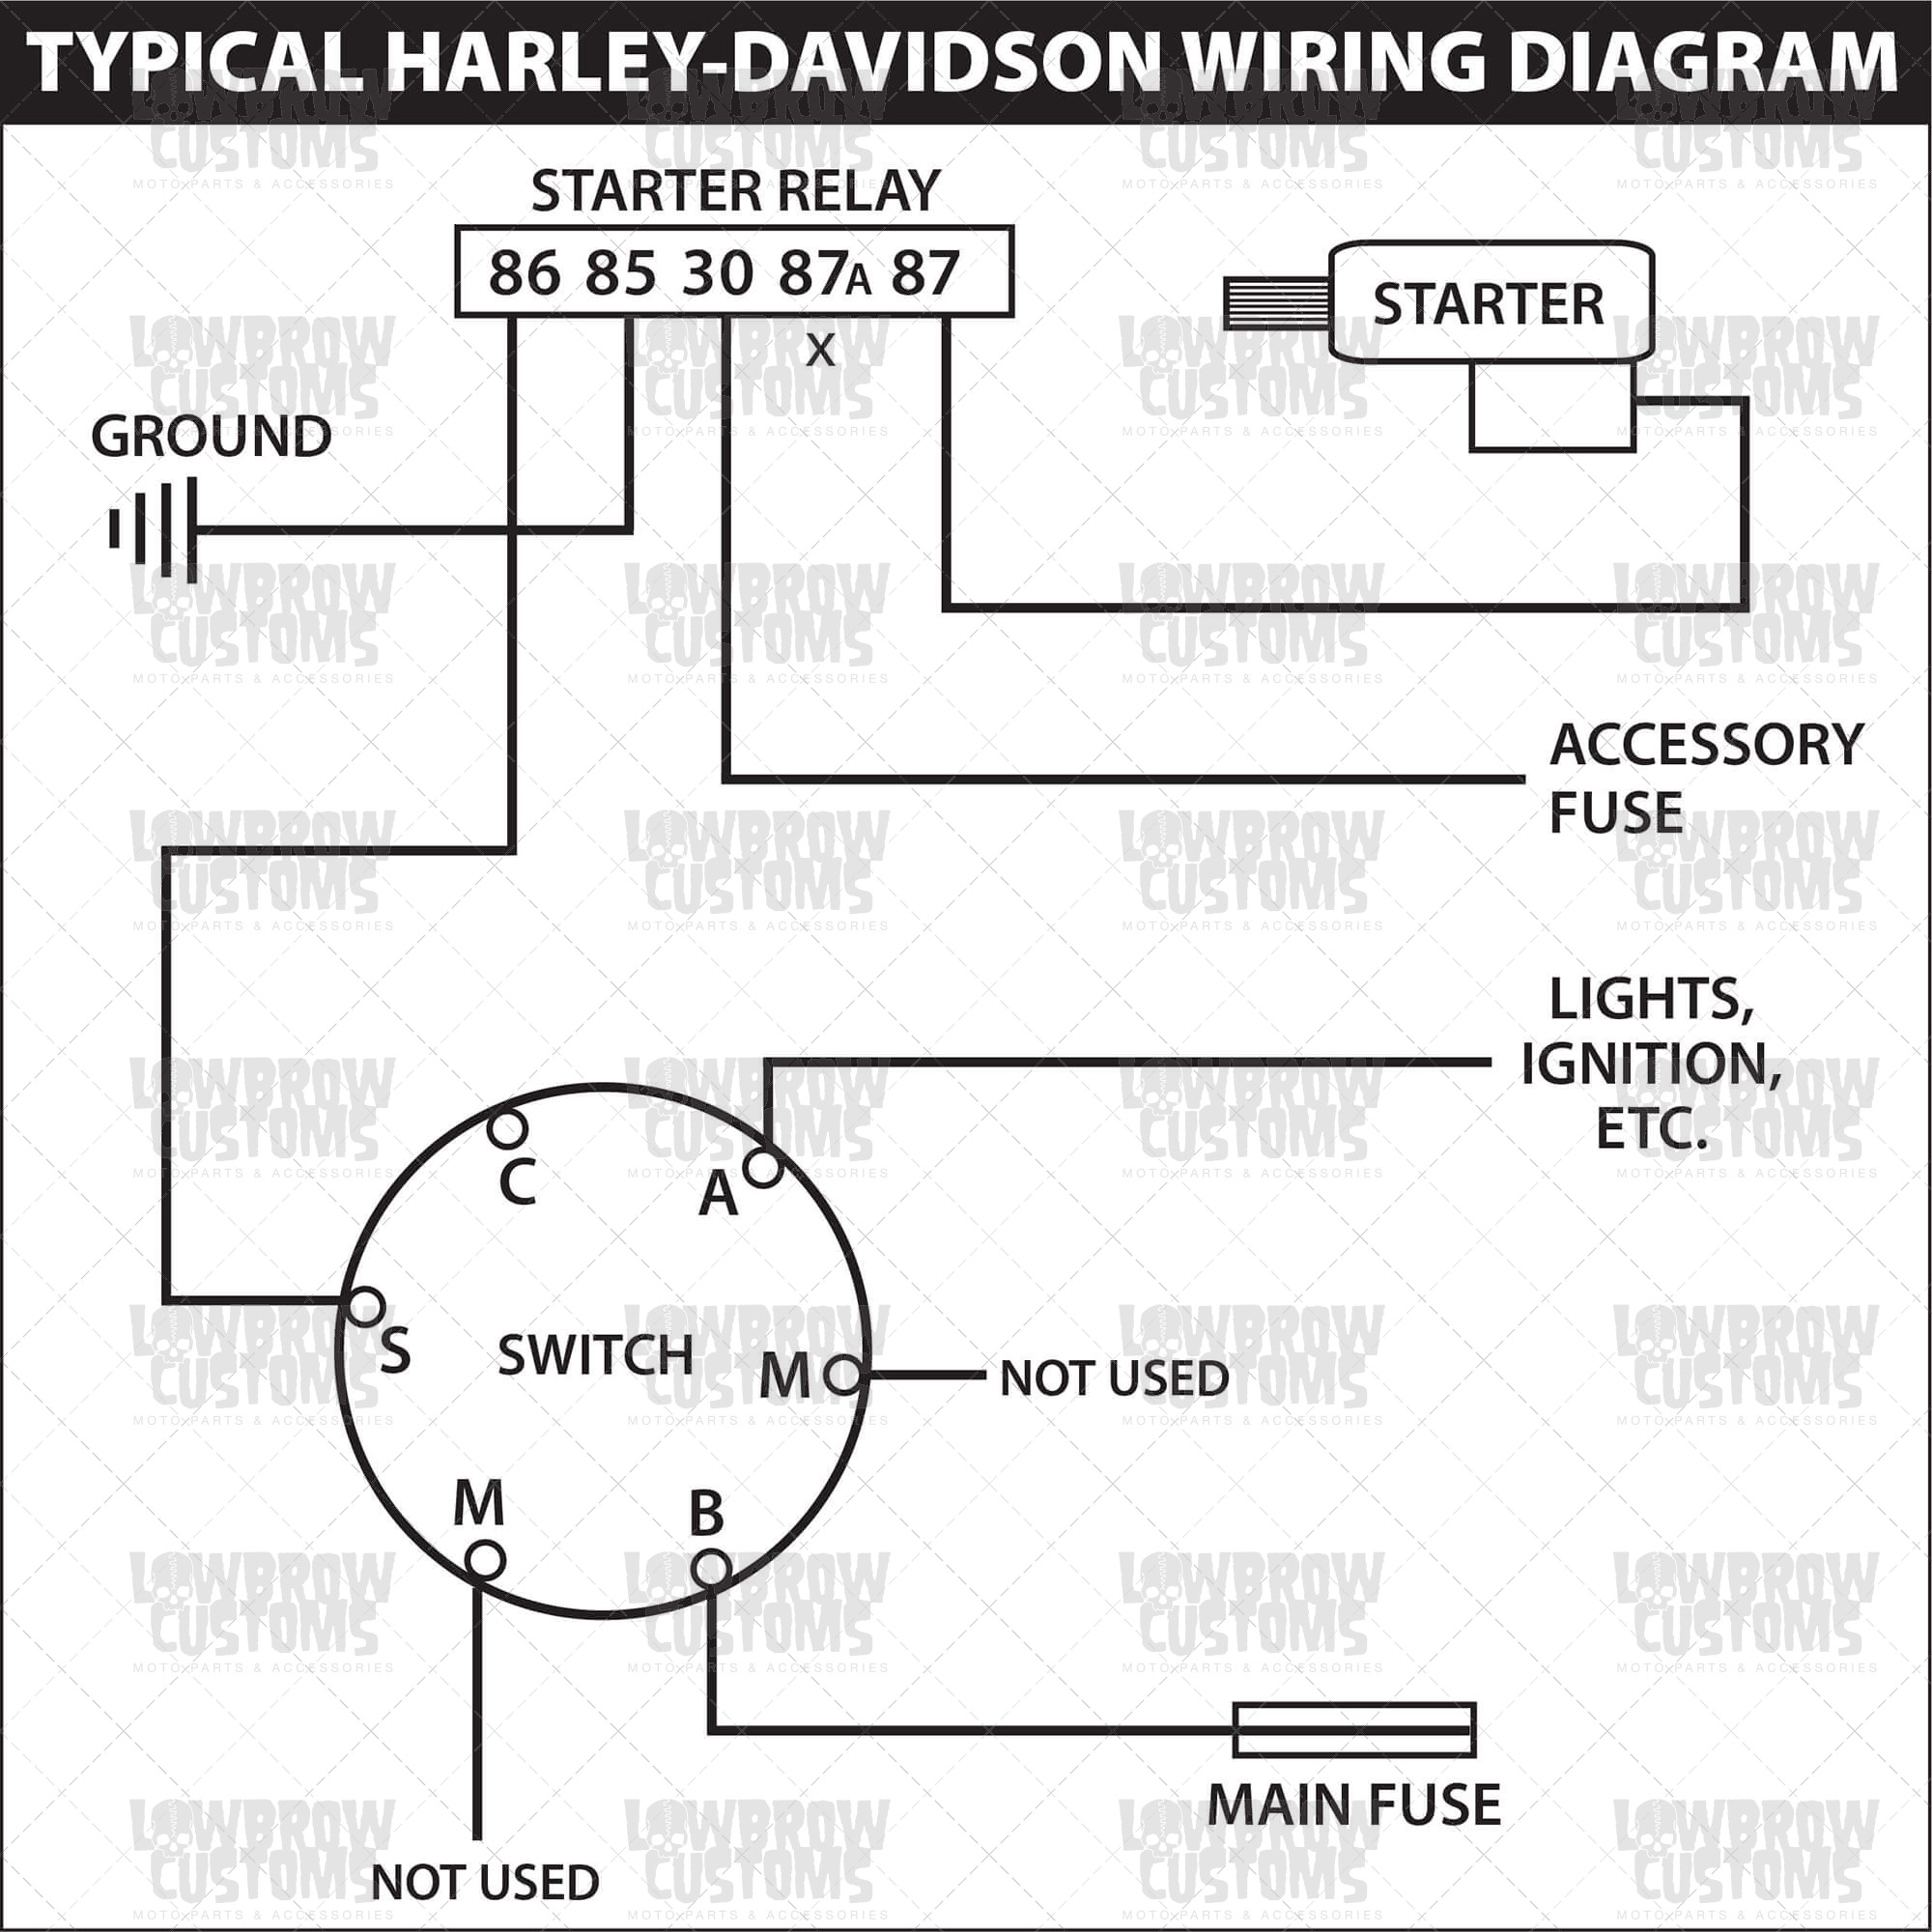 Weatherpoof Starter Ignition Switch With Key Wiring Diagram - Wiring - Ignition Switch Wiring Diagram